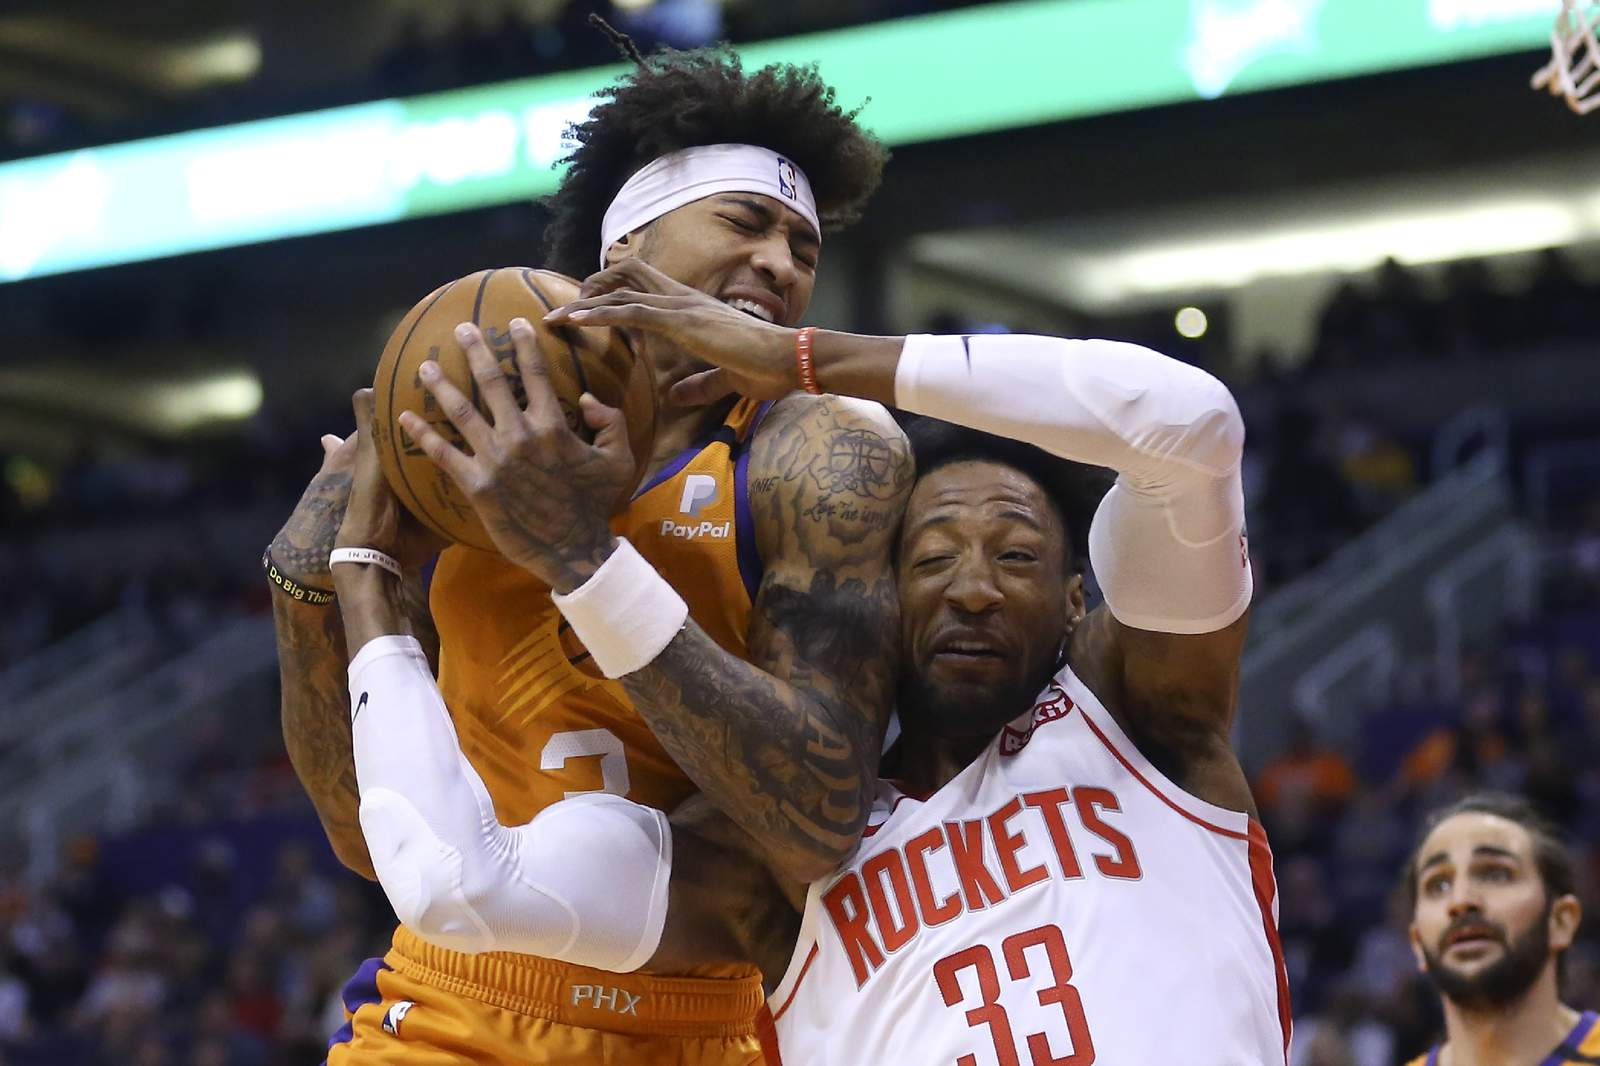 'A cop falsely detain me.' Rockets forward Robert Covington remembers police interaction amid national protests